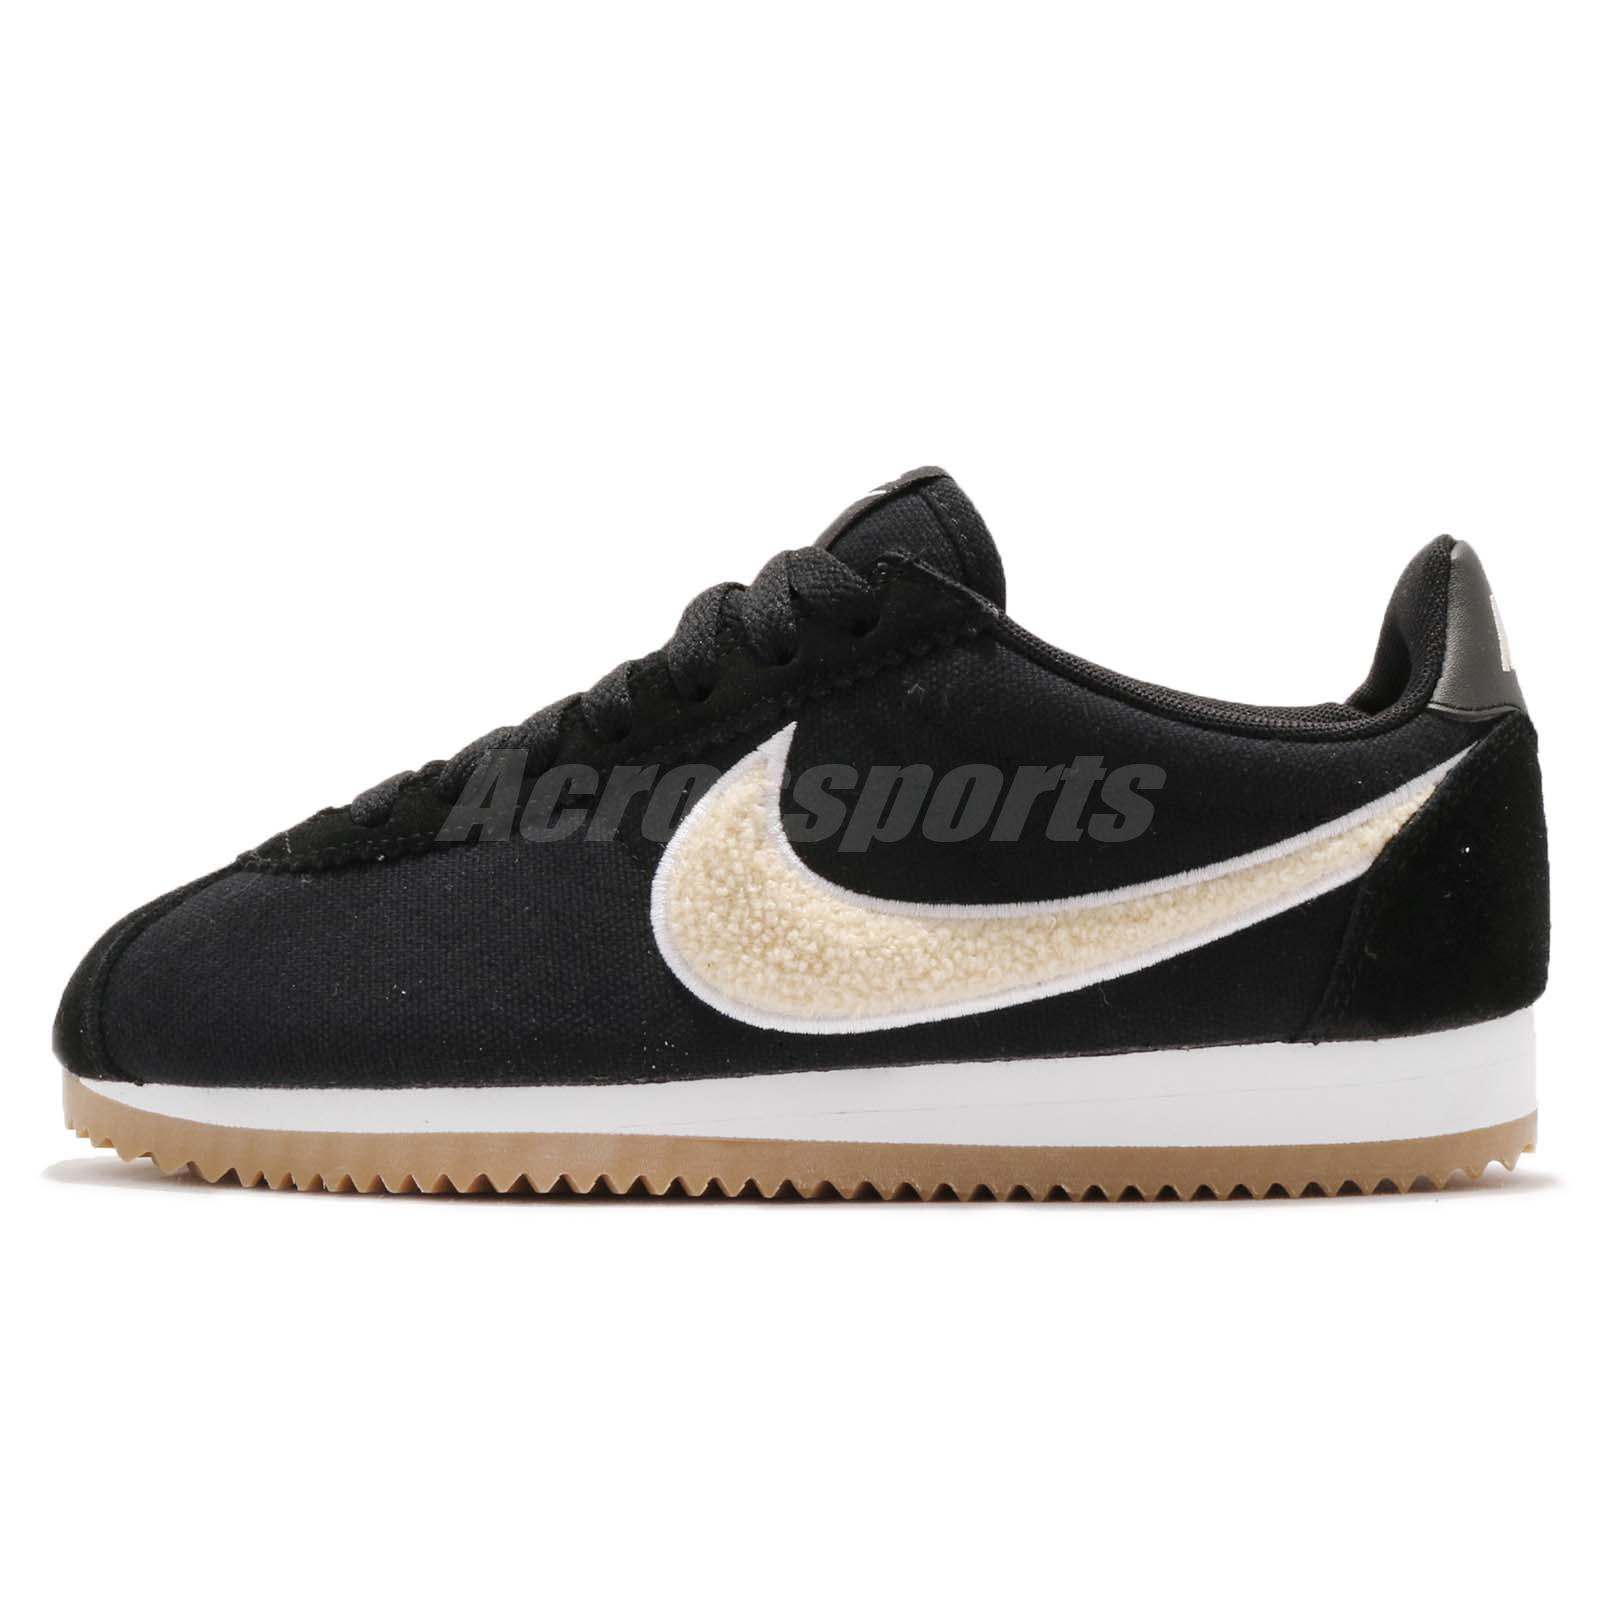 big sale 09795 f3115 Nike Wmns Classic Cortez PREM Premium Black Light Cream Gum Women 905614-008